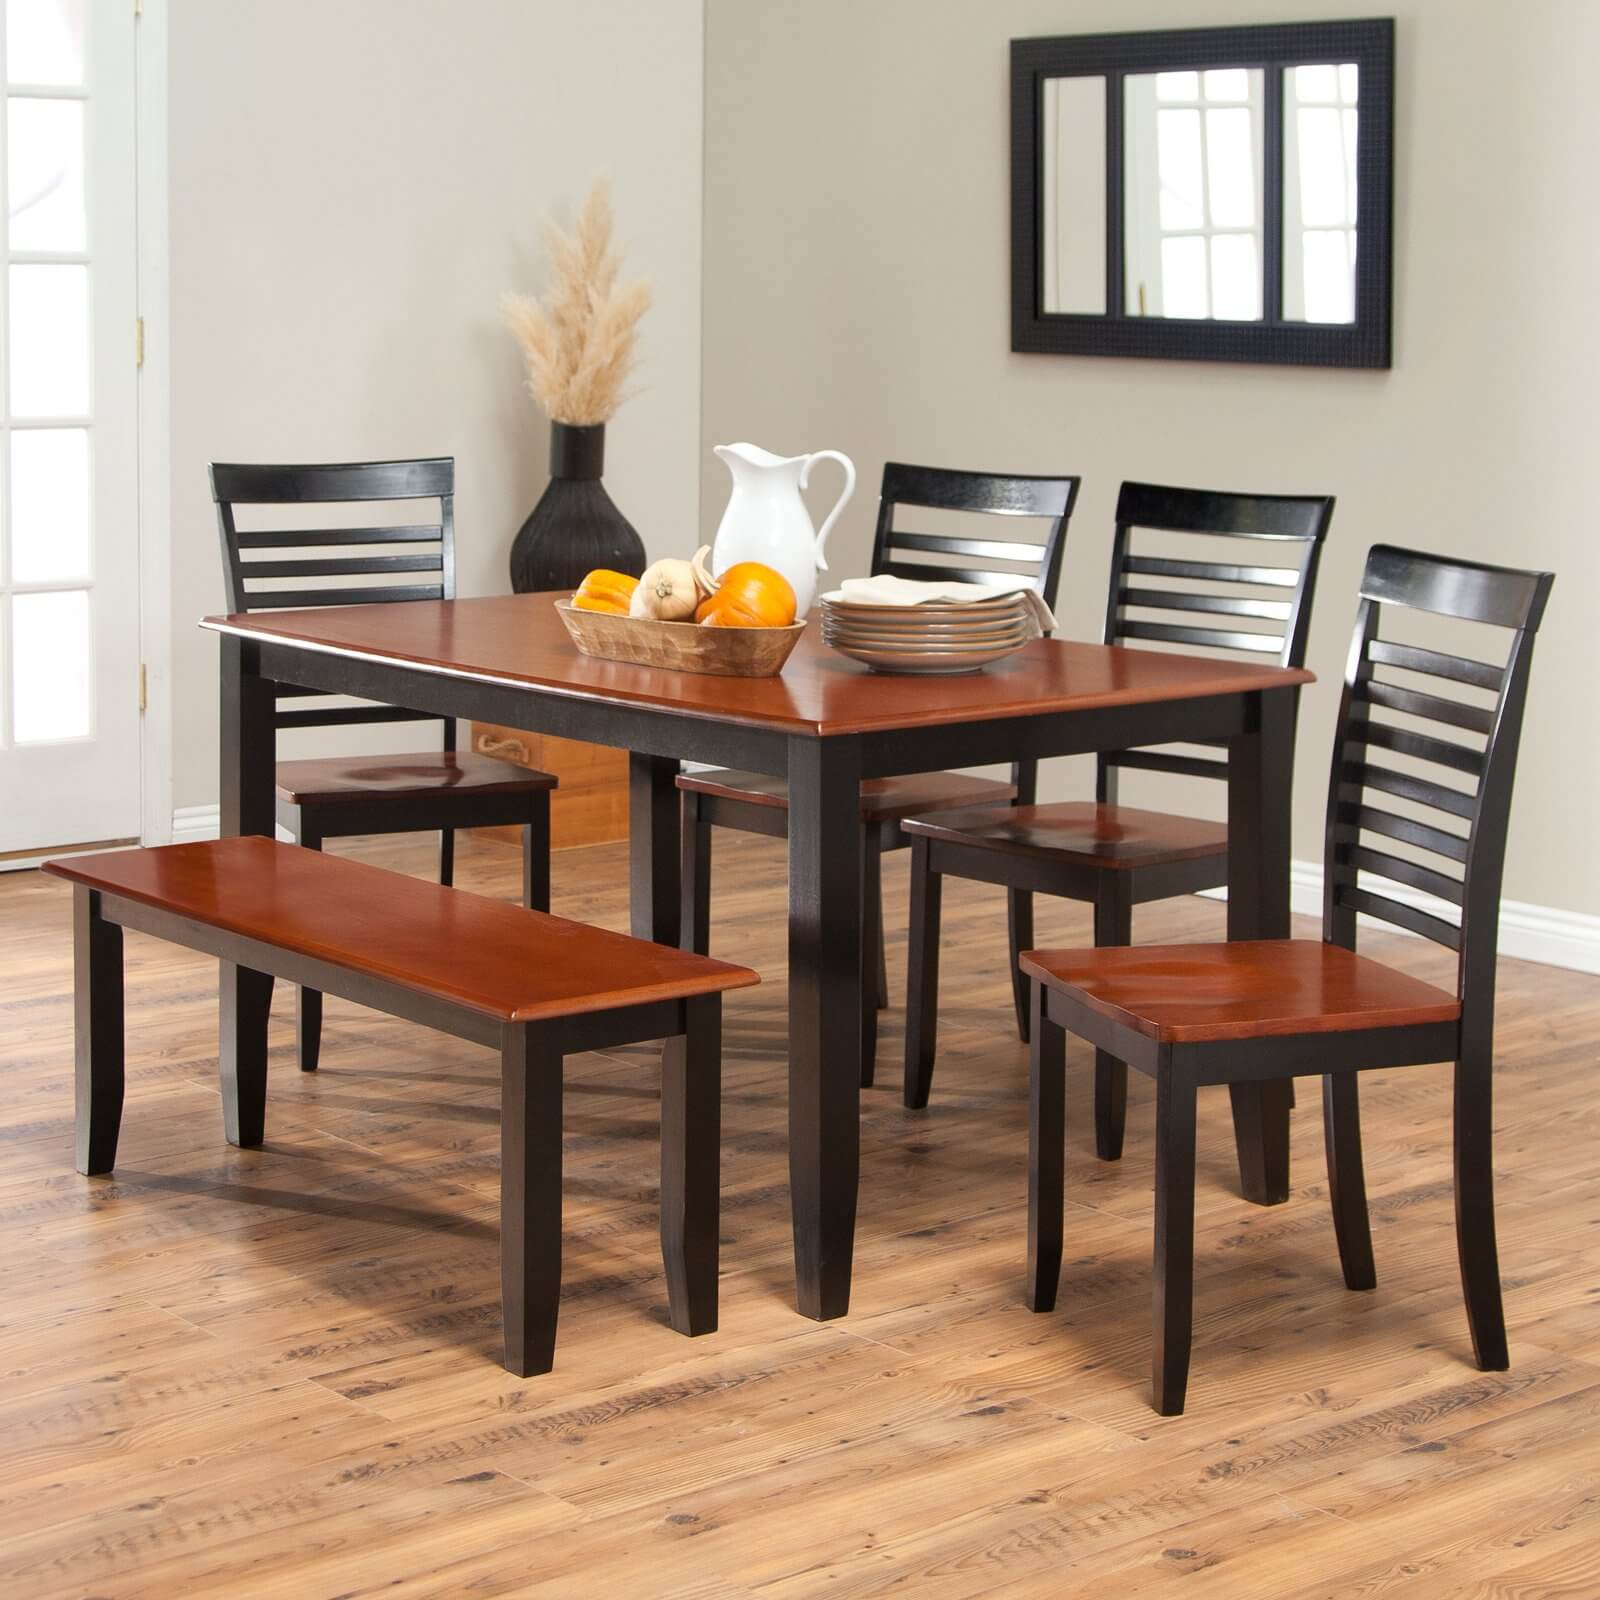 Timber Dining Tables And Chairs 26 Dining Room Sets Big And Small With Bench Seating 2019